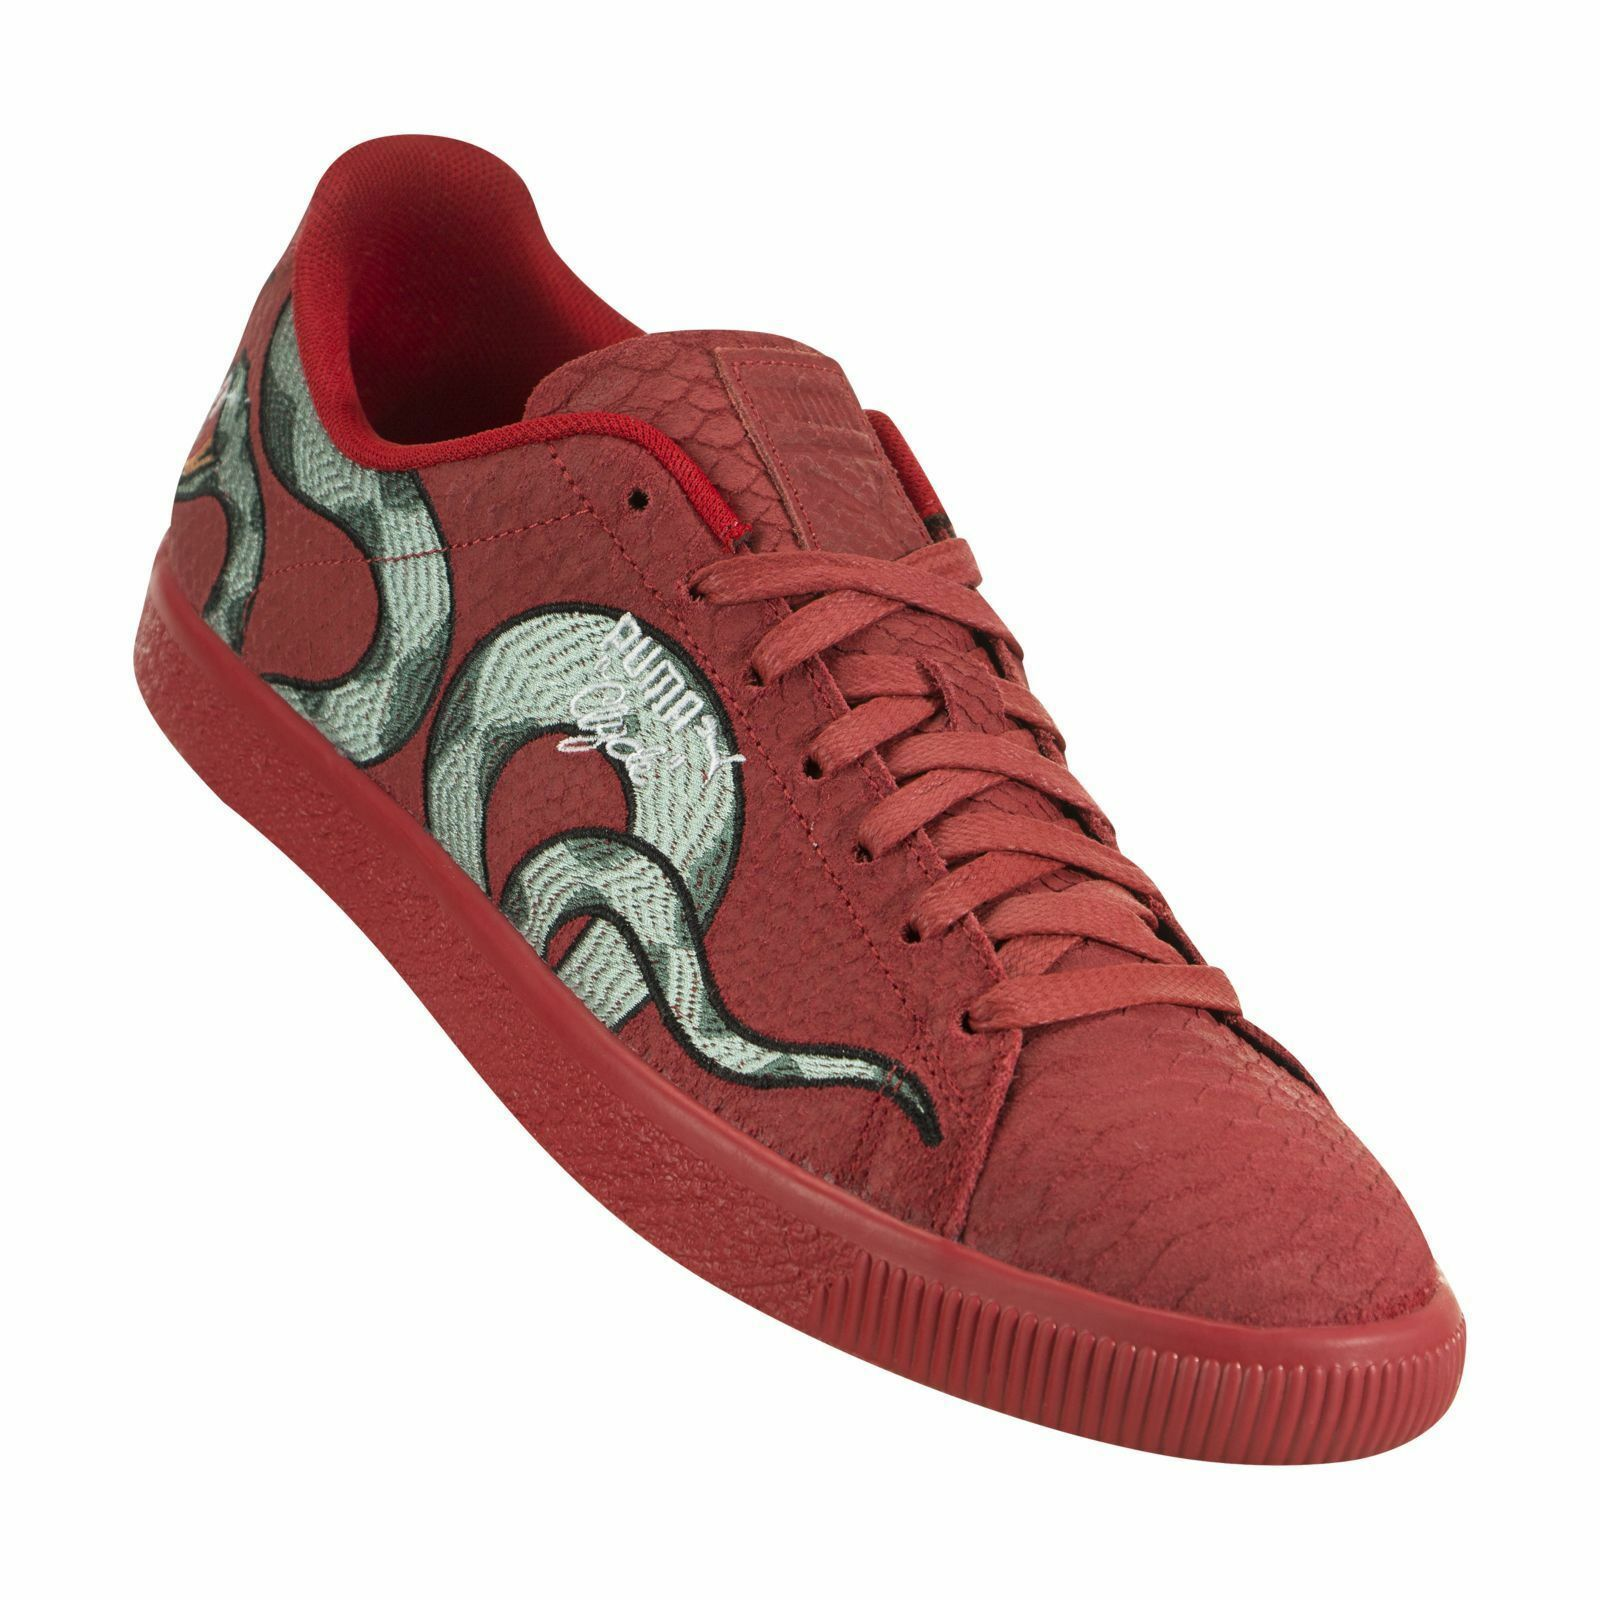 PUMA - CLYDE   SNAKE EMBROIDERY - 368111 02 - Men's shoes - RED - Size 9.5